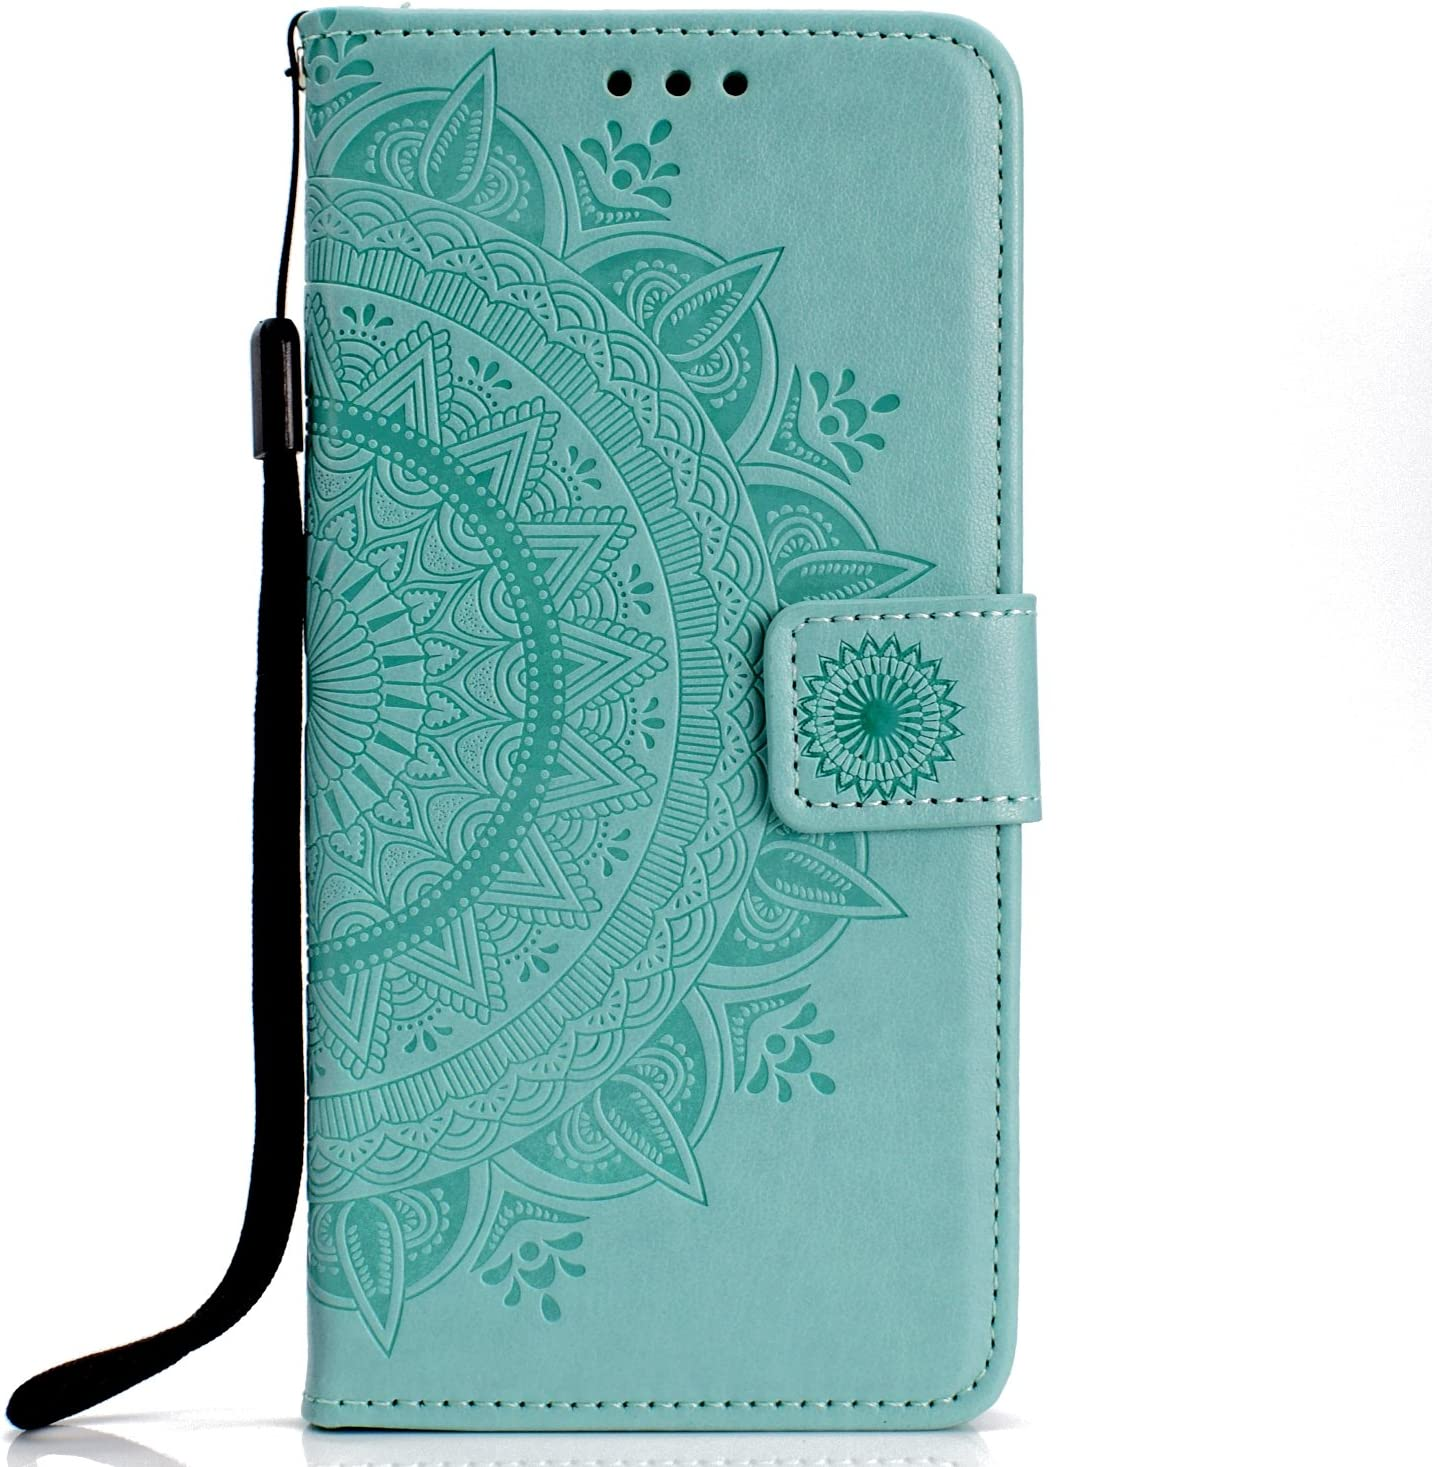 Herbests Compatible with iPhone XS//iPhone X Wallet Case Bling Glitter Crystal Diamond Butterfly Flower Leather Folio Flip Case Slim Book Cover with Credit Card Slot Stand Function,Gold